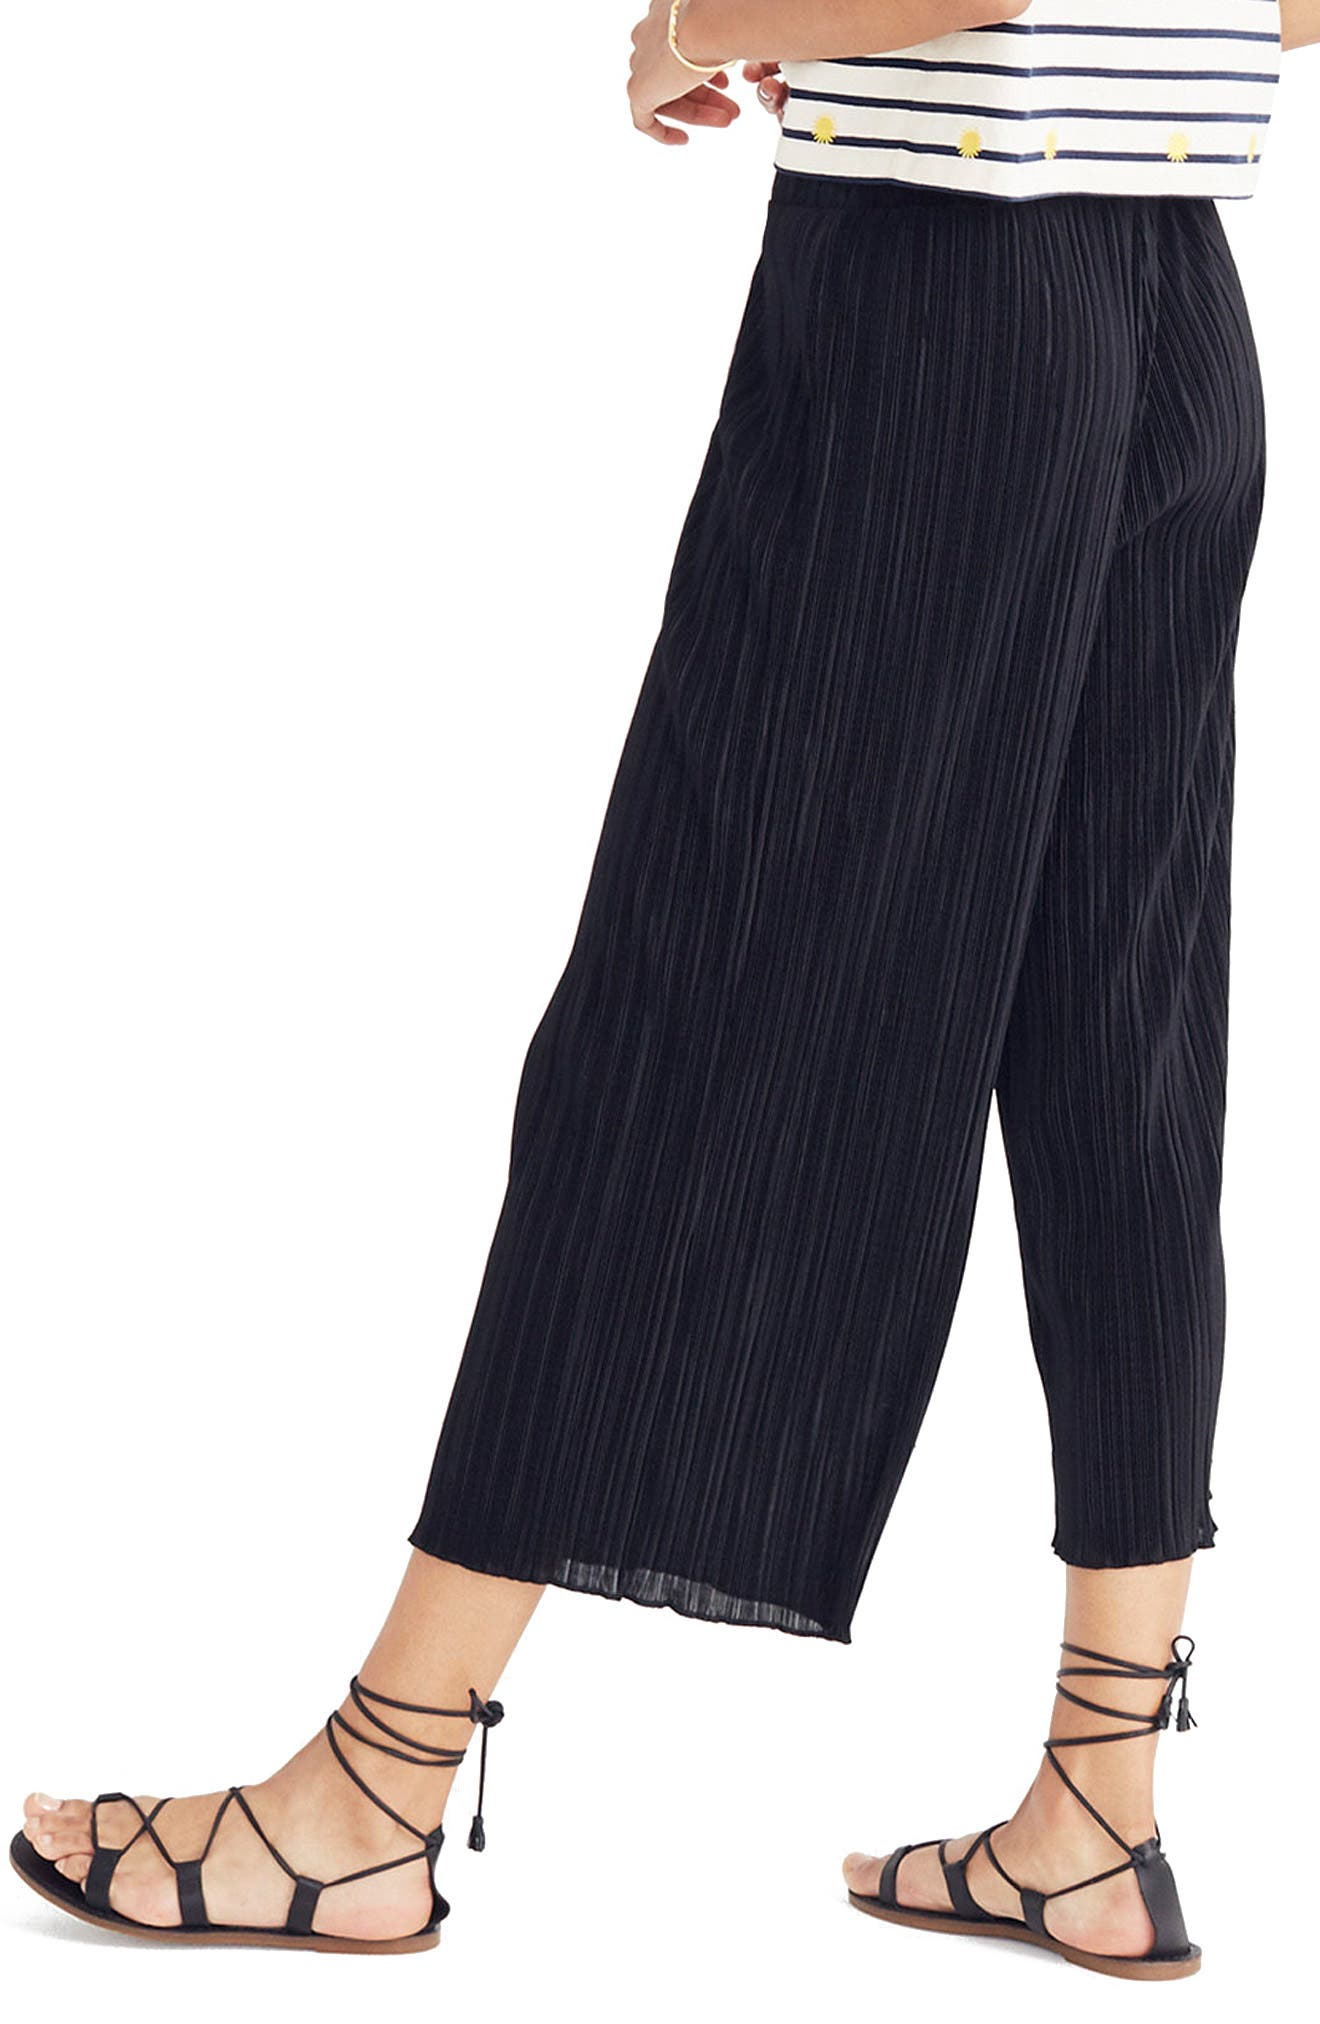 Texture & Thread Micropleat Wide Leg Pants,                             Alternate thumbnail 2, color,                             001